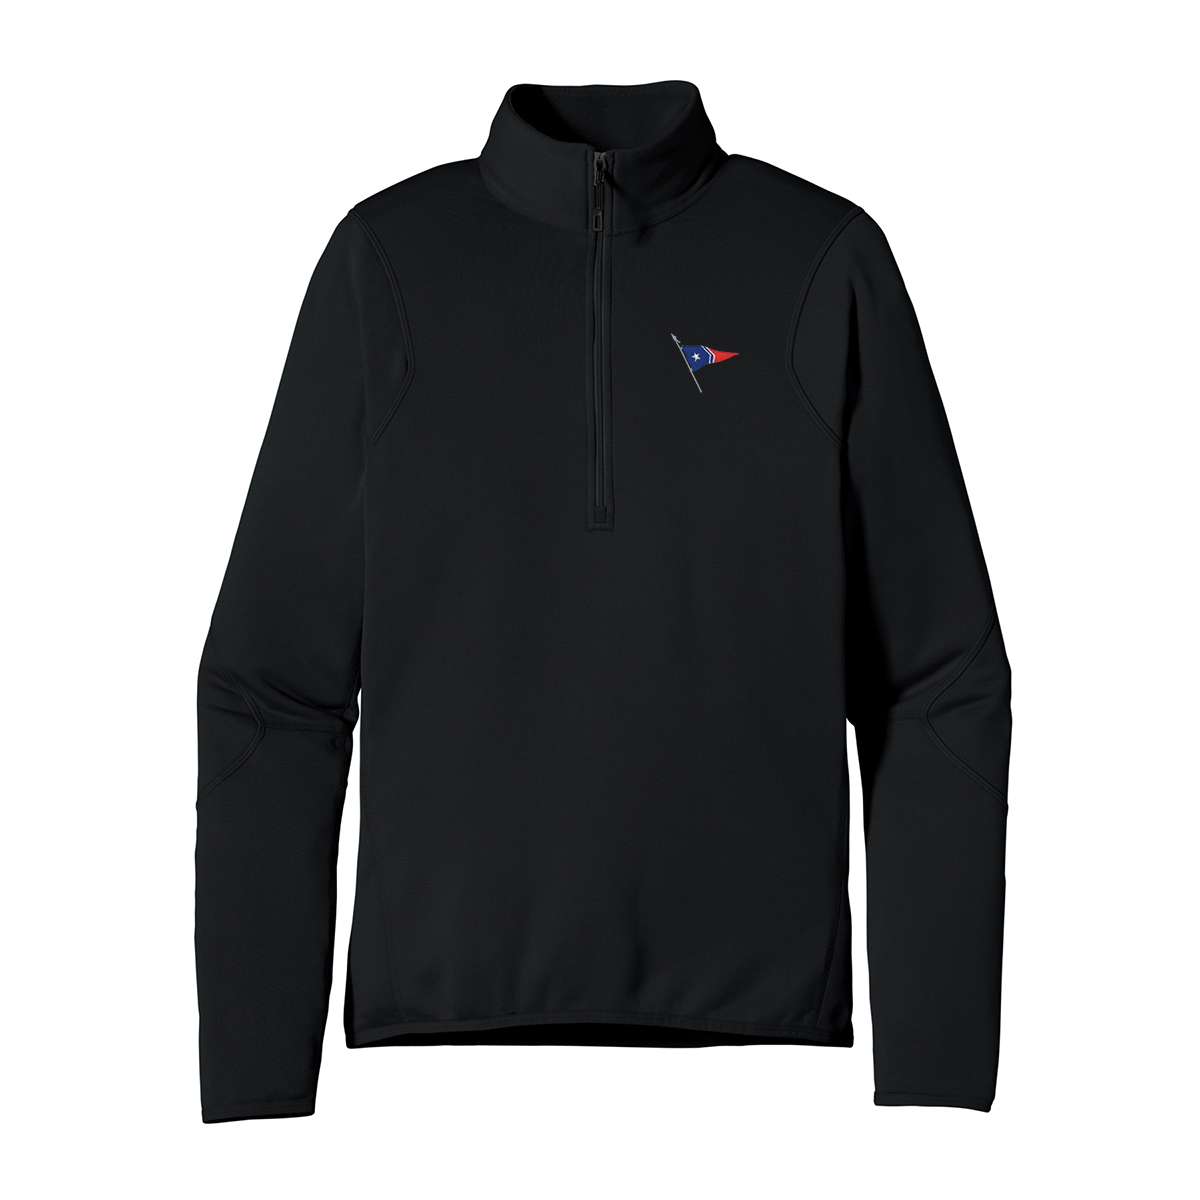 GHYC - M'S PITON PULLOVER